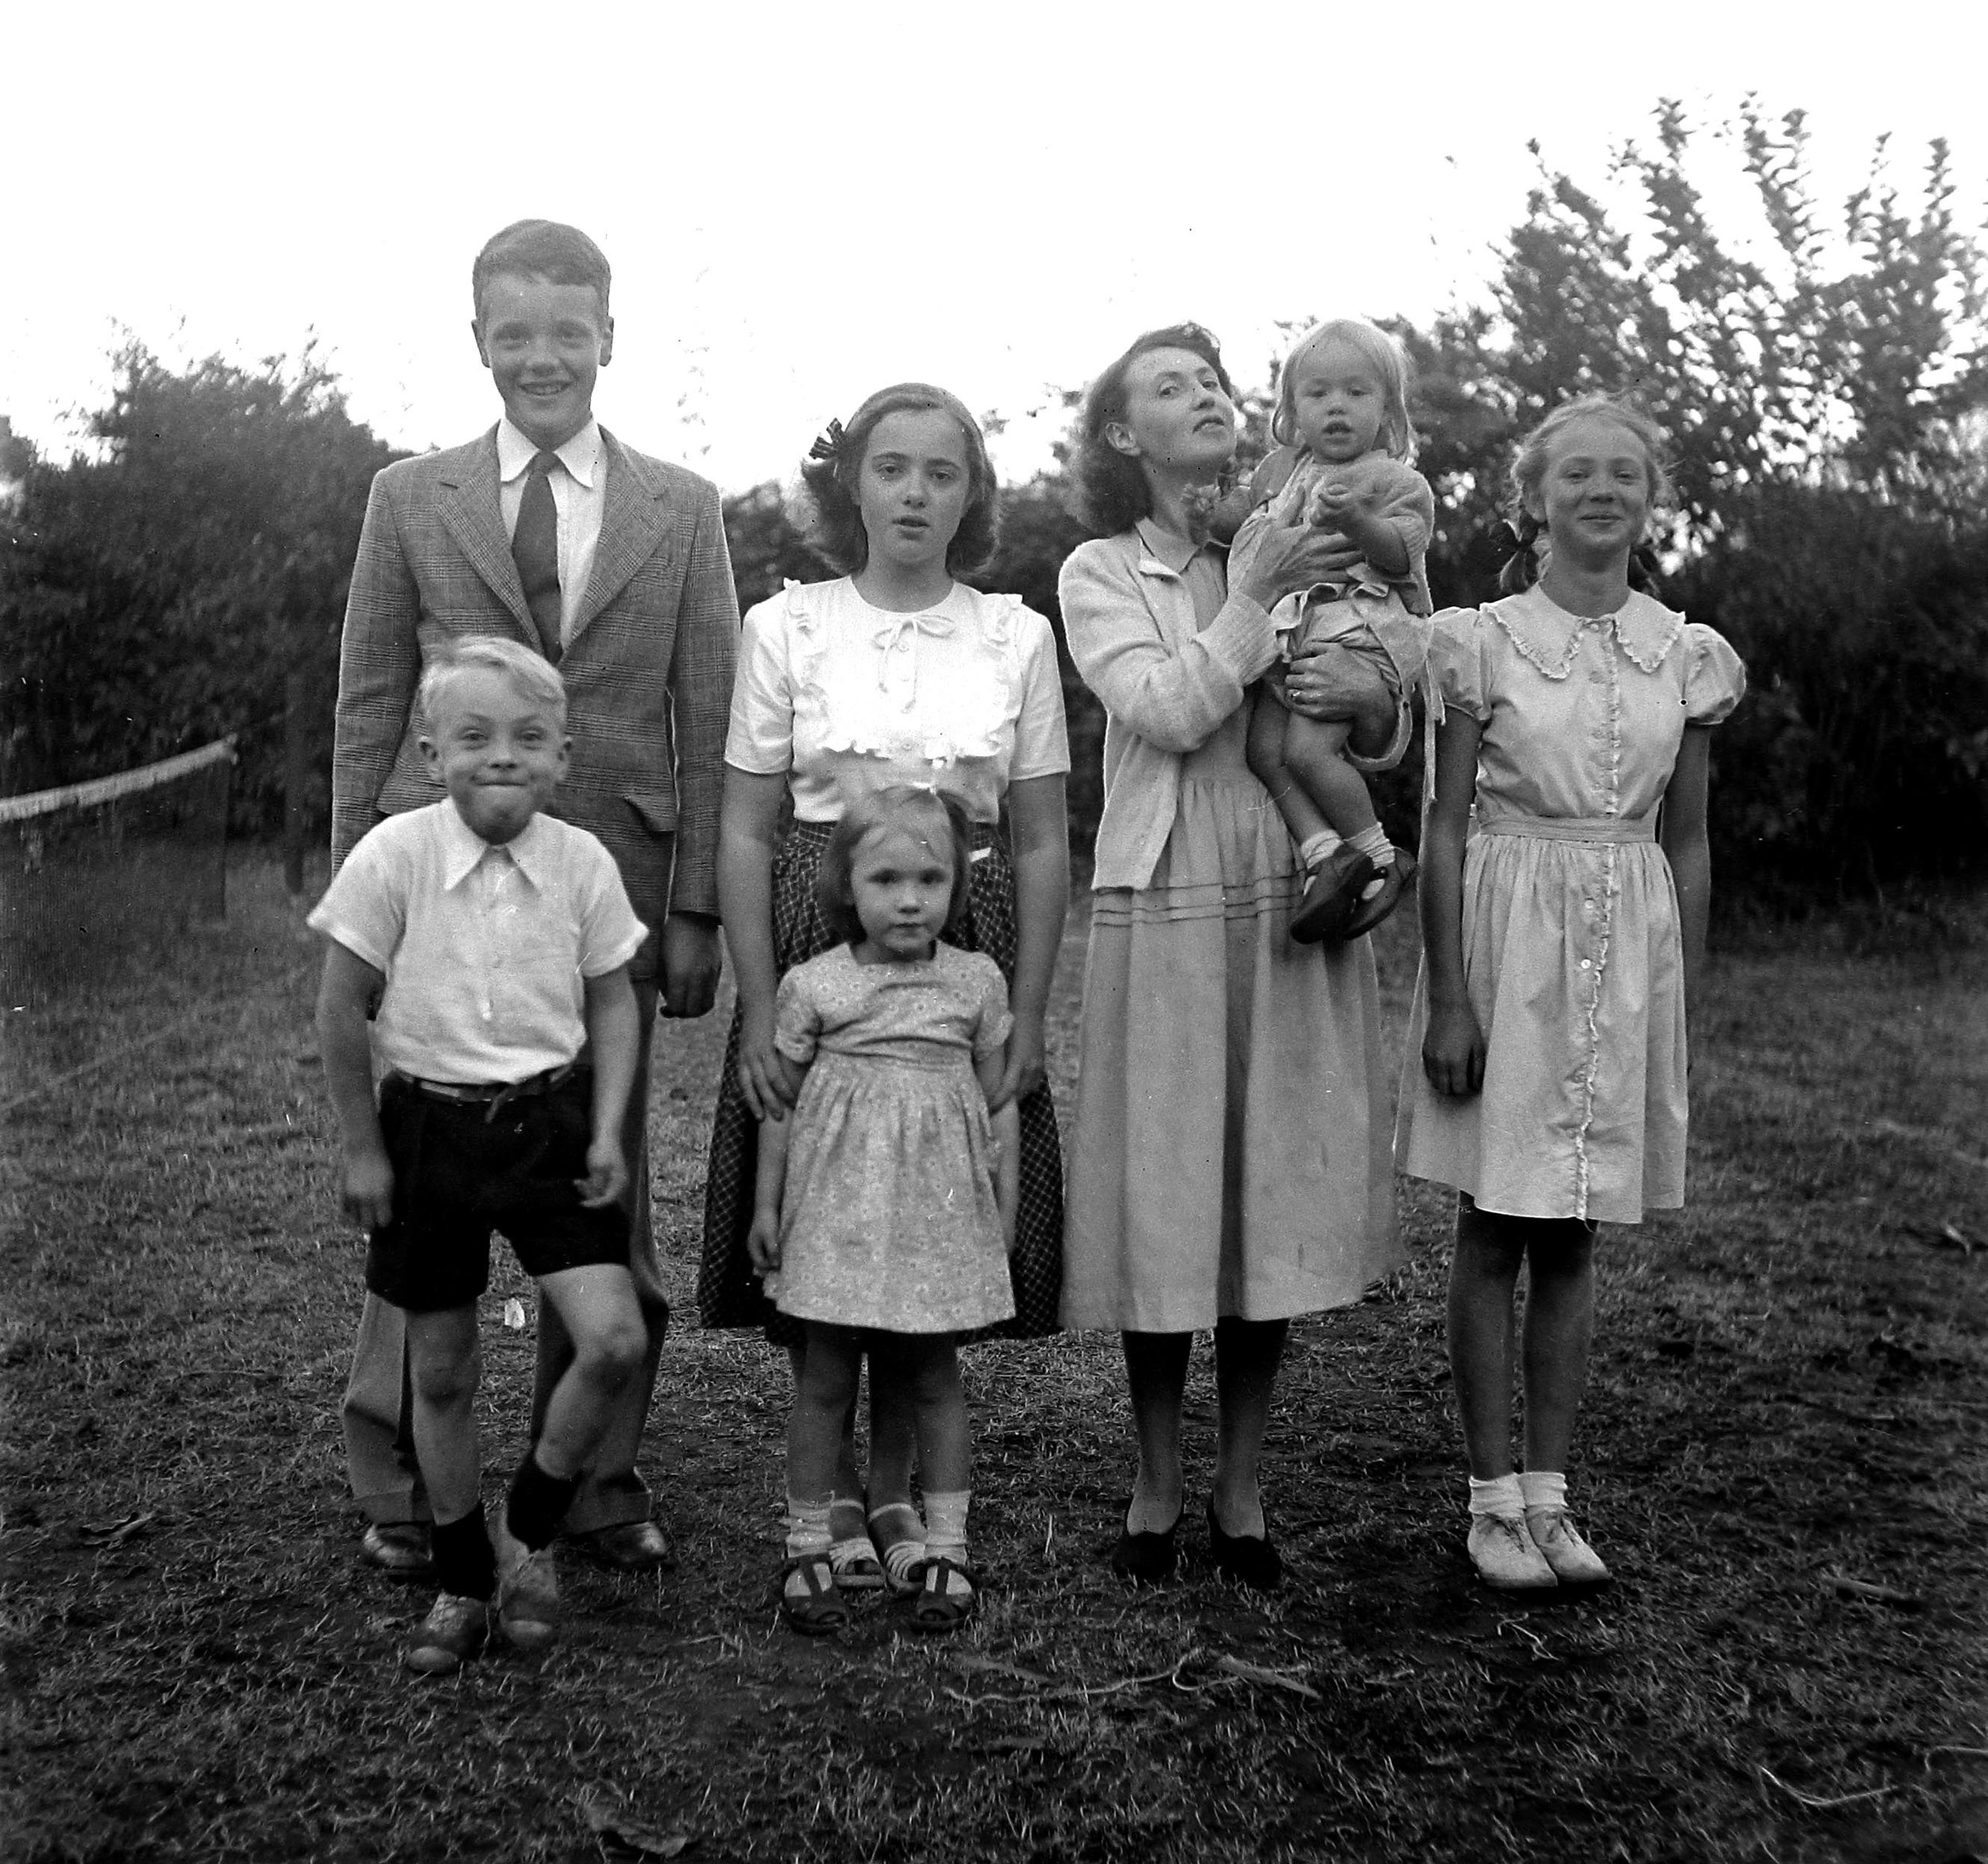 Odhner Family 1948. Back: Pehr, Kirstin, Mother (holding Siri), and Jeannette. Front: Michael, Rachel. (Dad was taking the picture.)